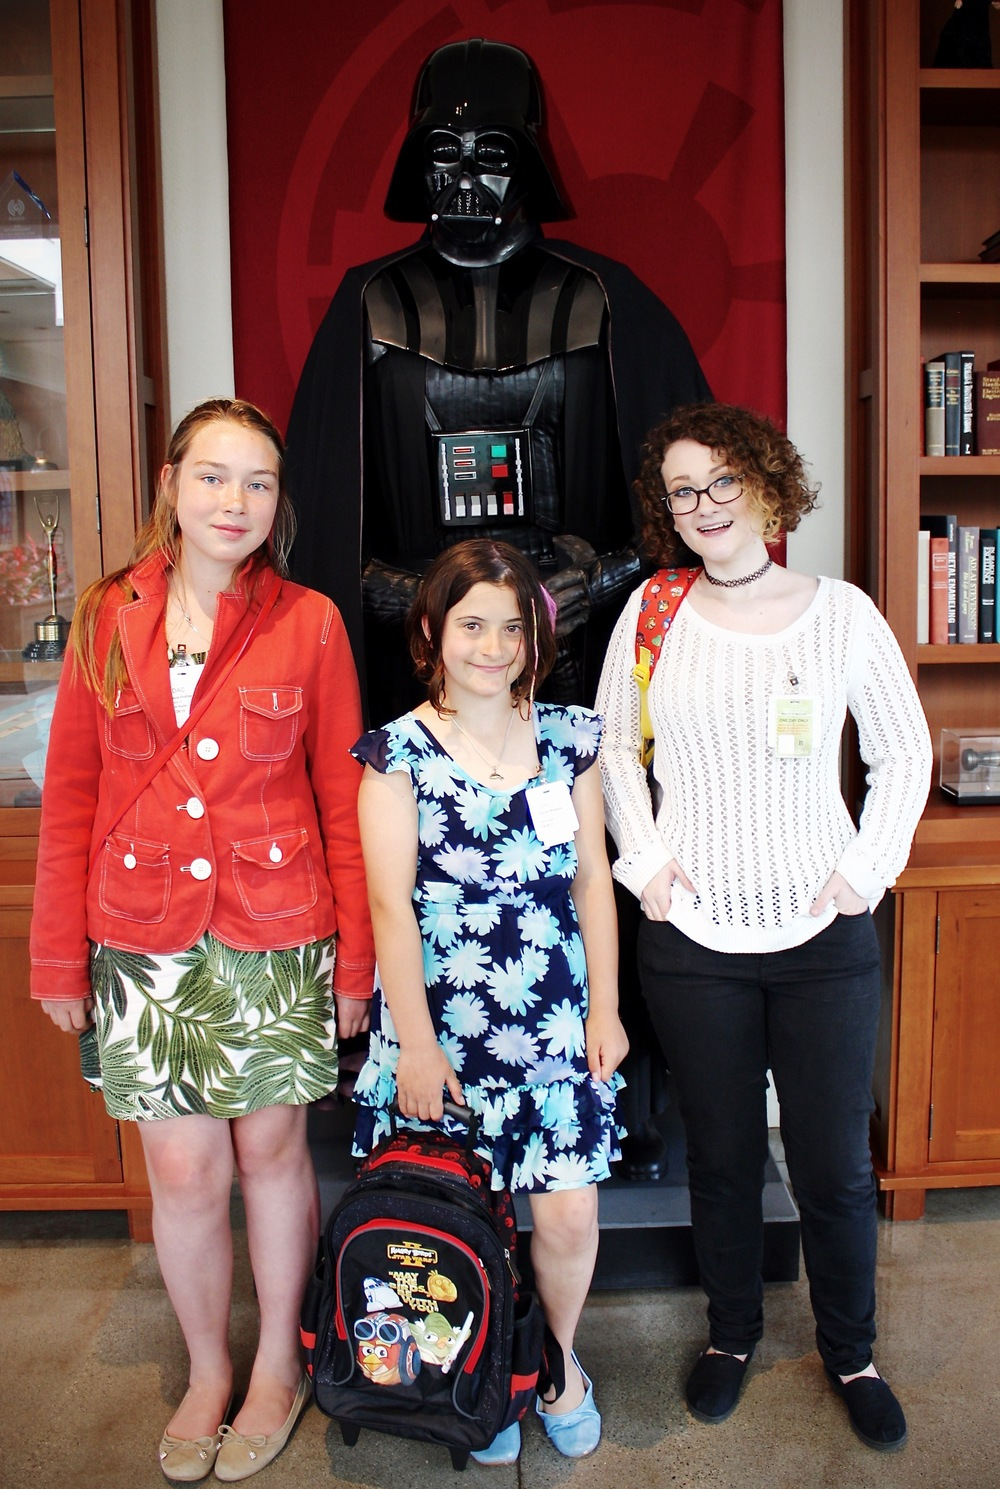 CONTEST RUNNERS-UP ON A TOUR OF LUCASFILM.